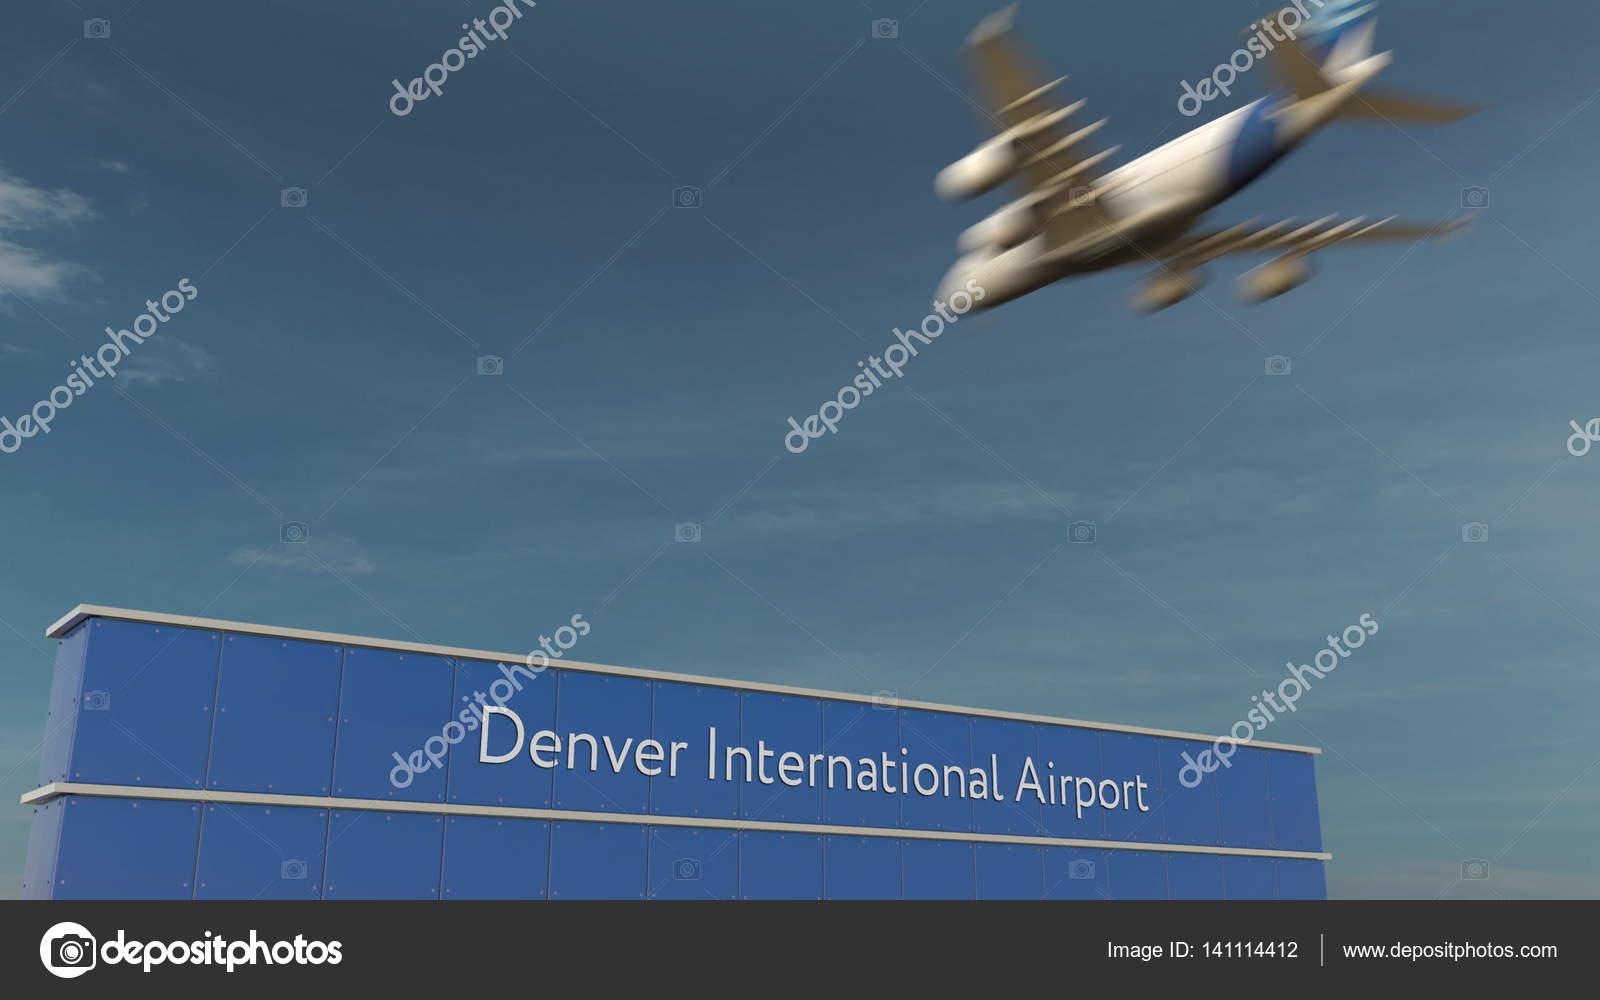 Commercial Airplane Landing At Denver International Airport 3D Rendering Stock Photo